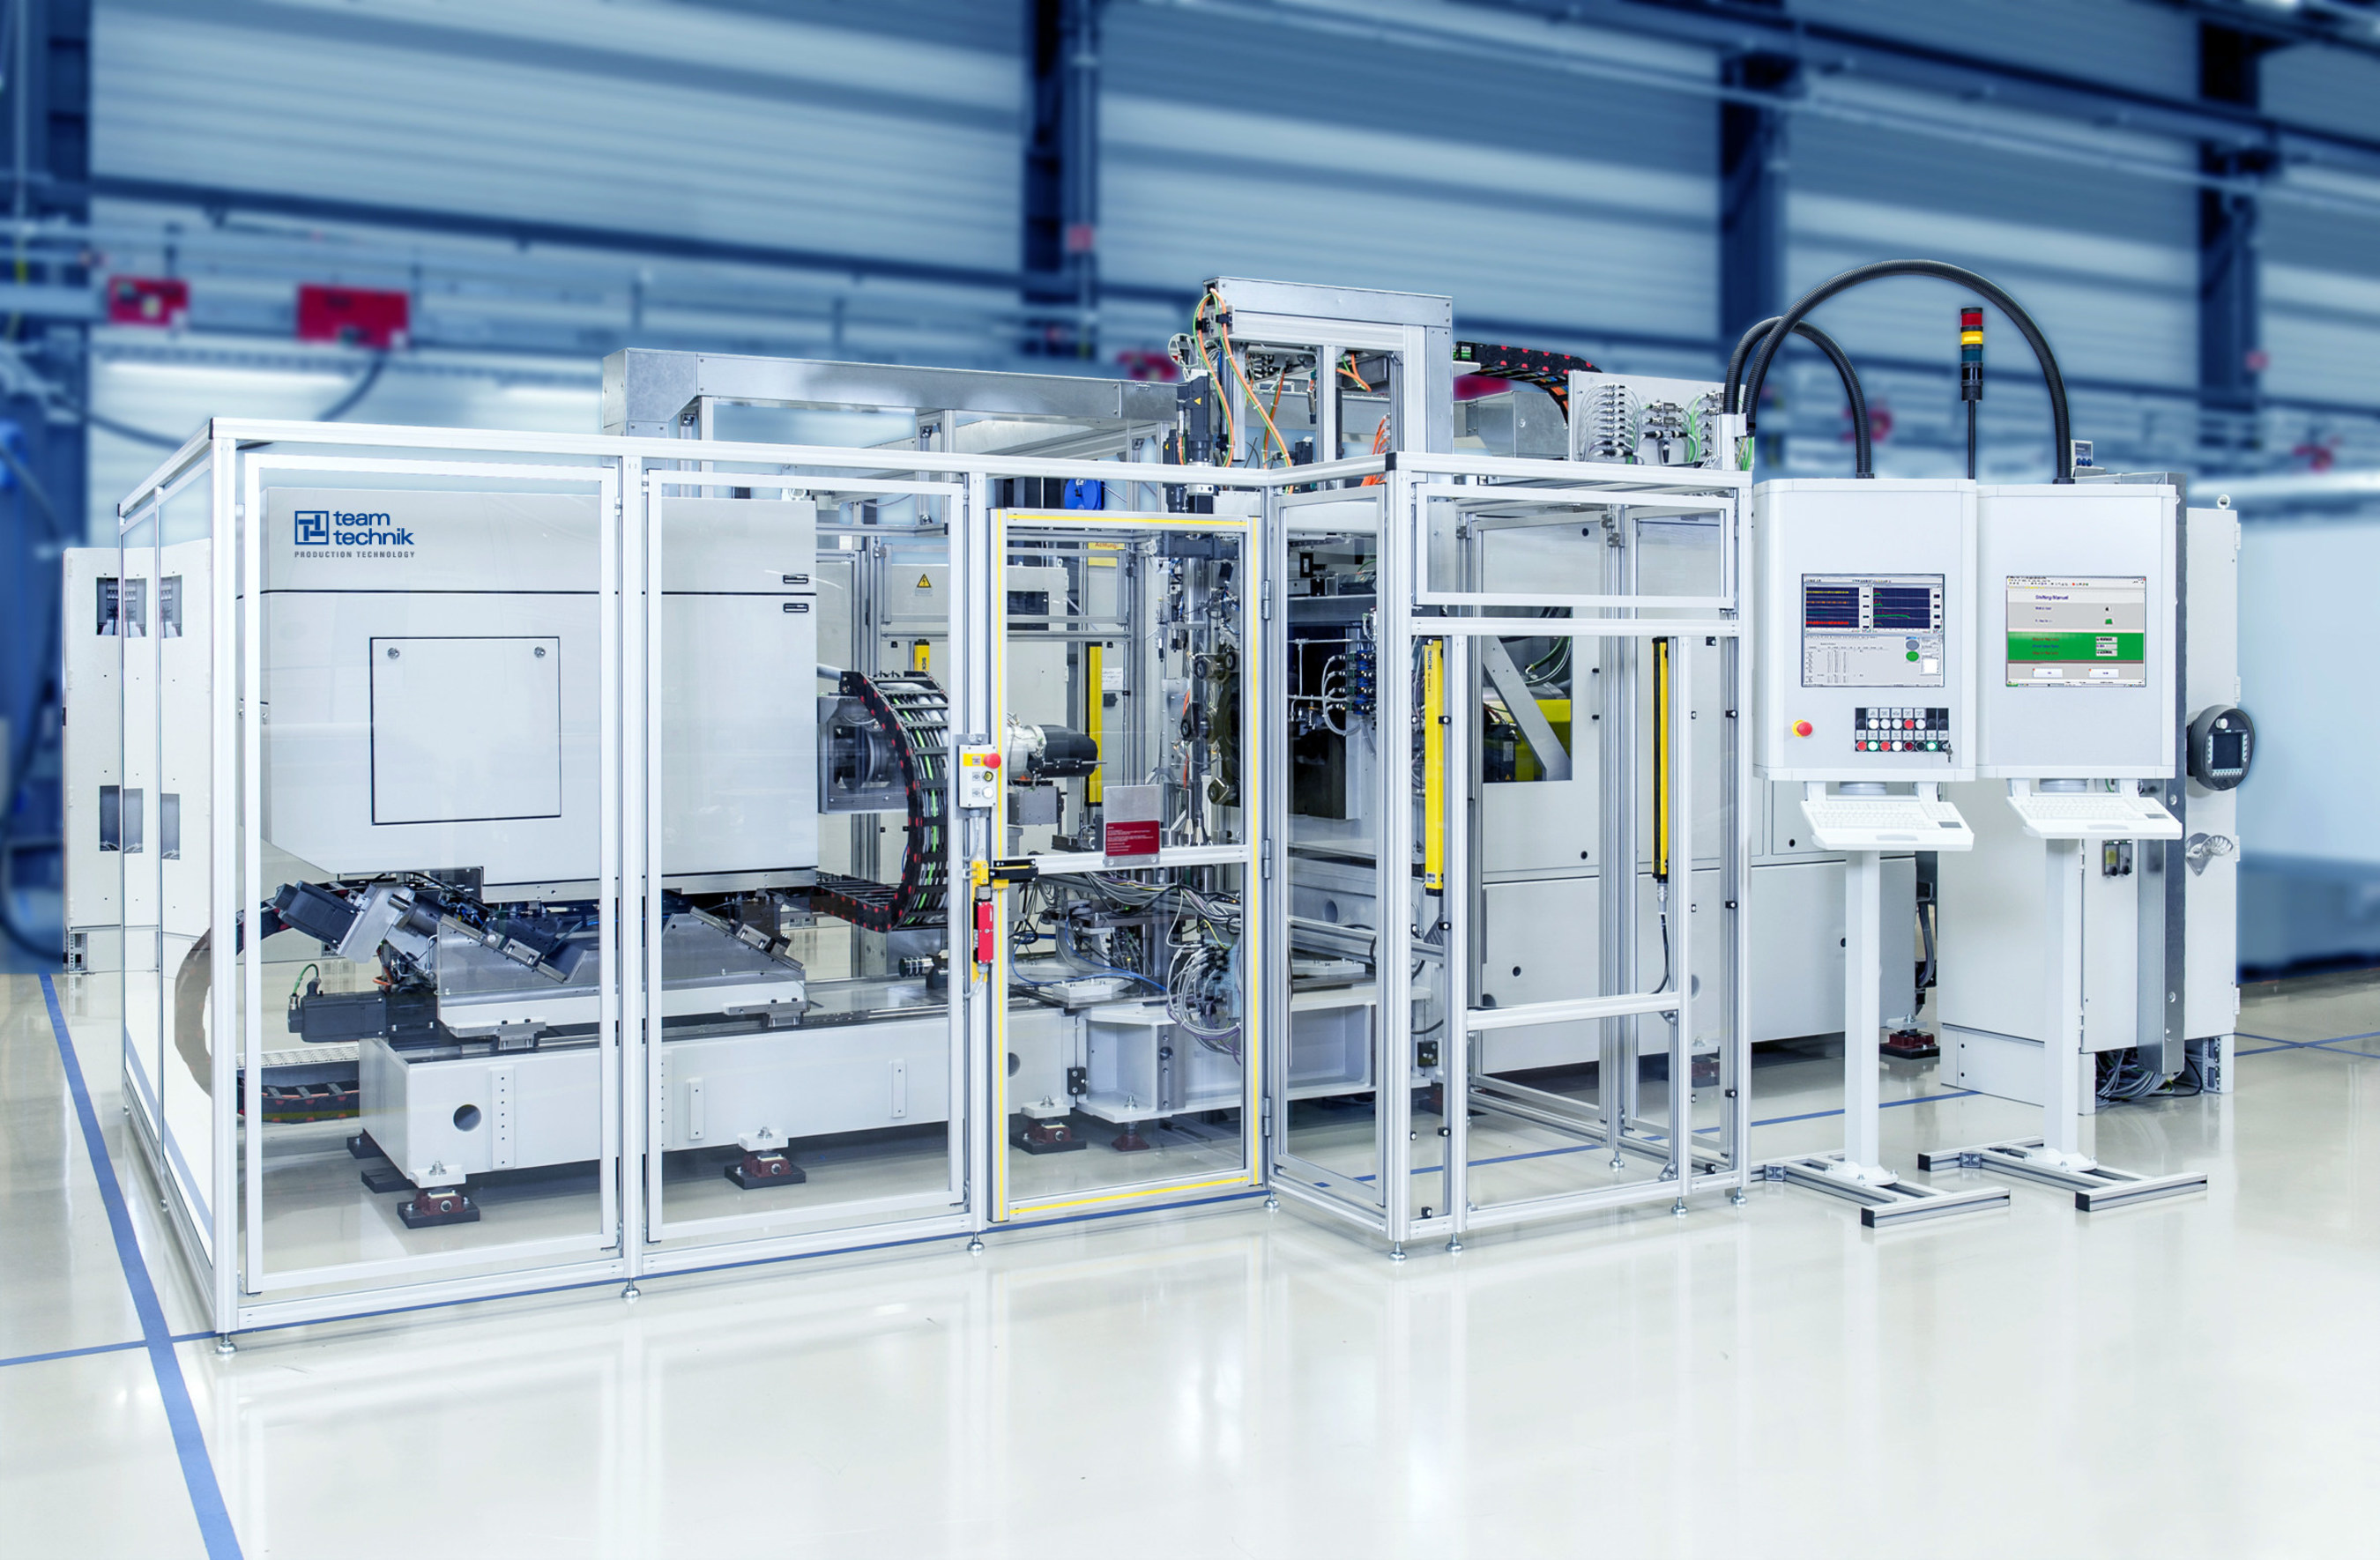 teamtechnik: series production of transmission test benches | Photo: teamtechnik (no fee for printing - notification requested)